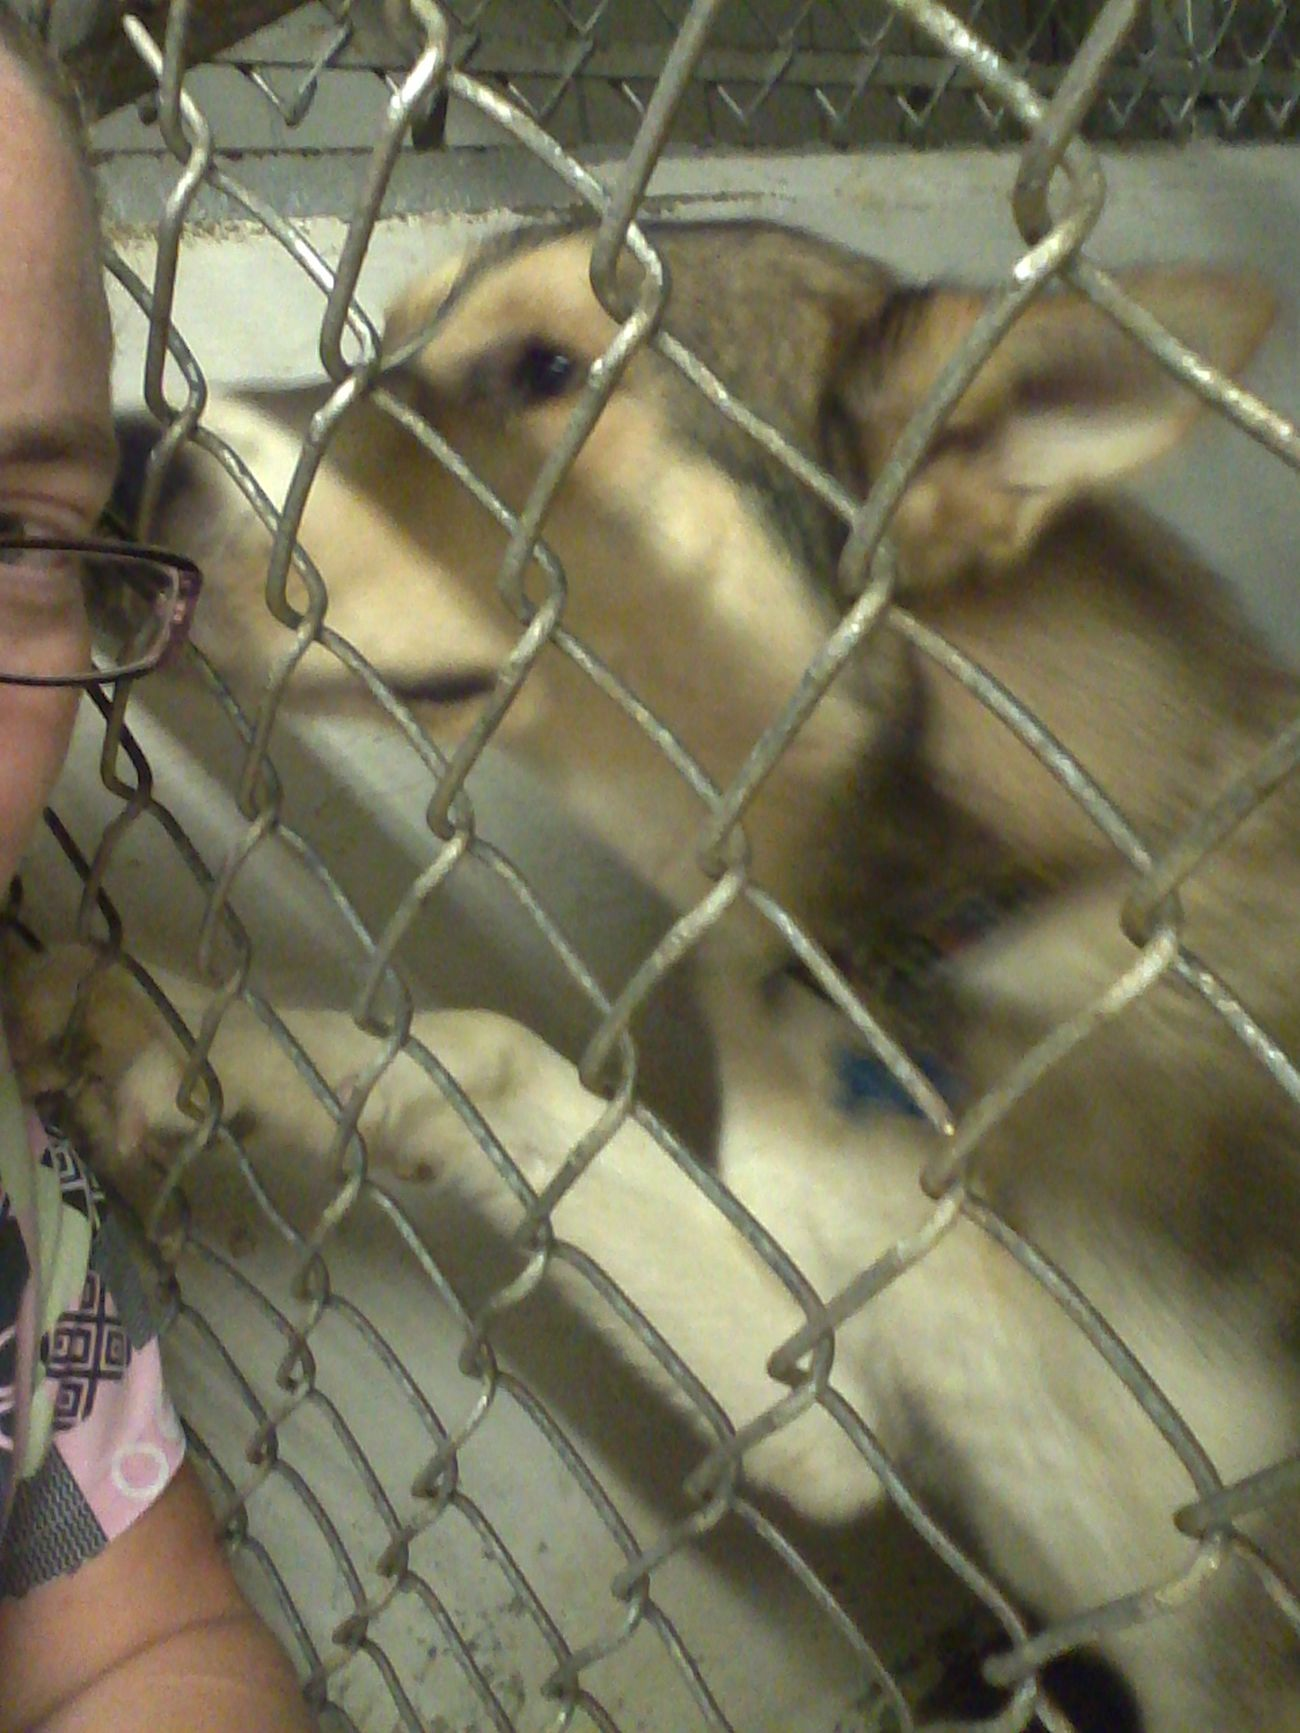 Doggy ♥ Lovemyjob Helovesmeandilovehim Kisses